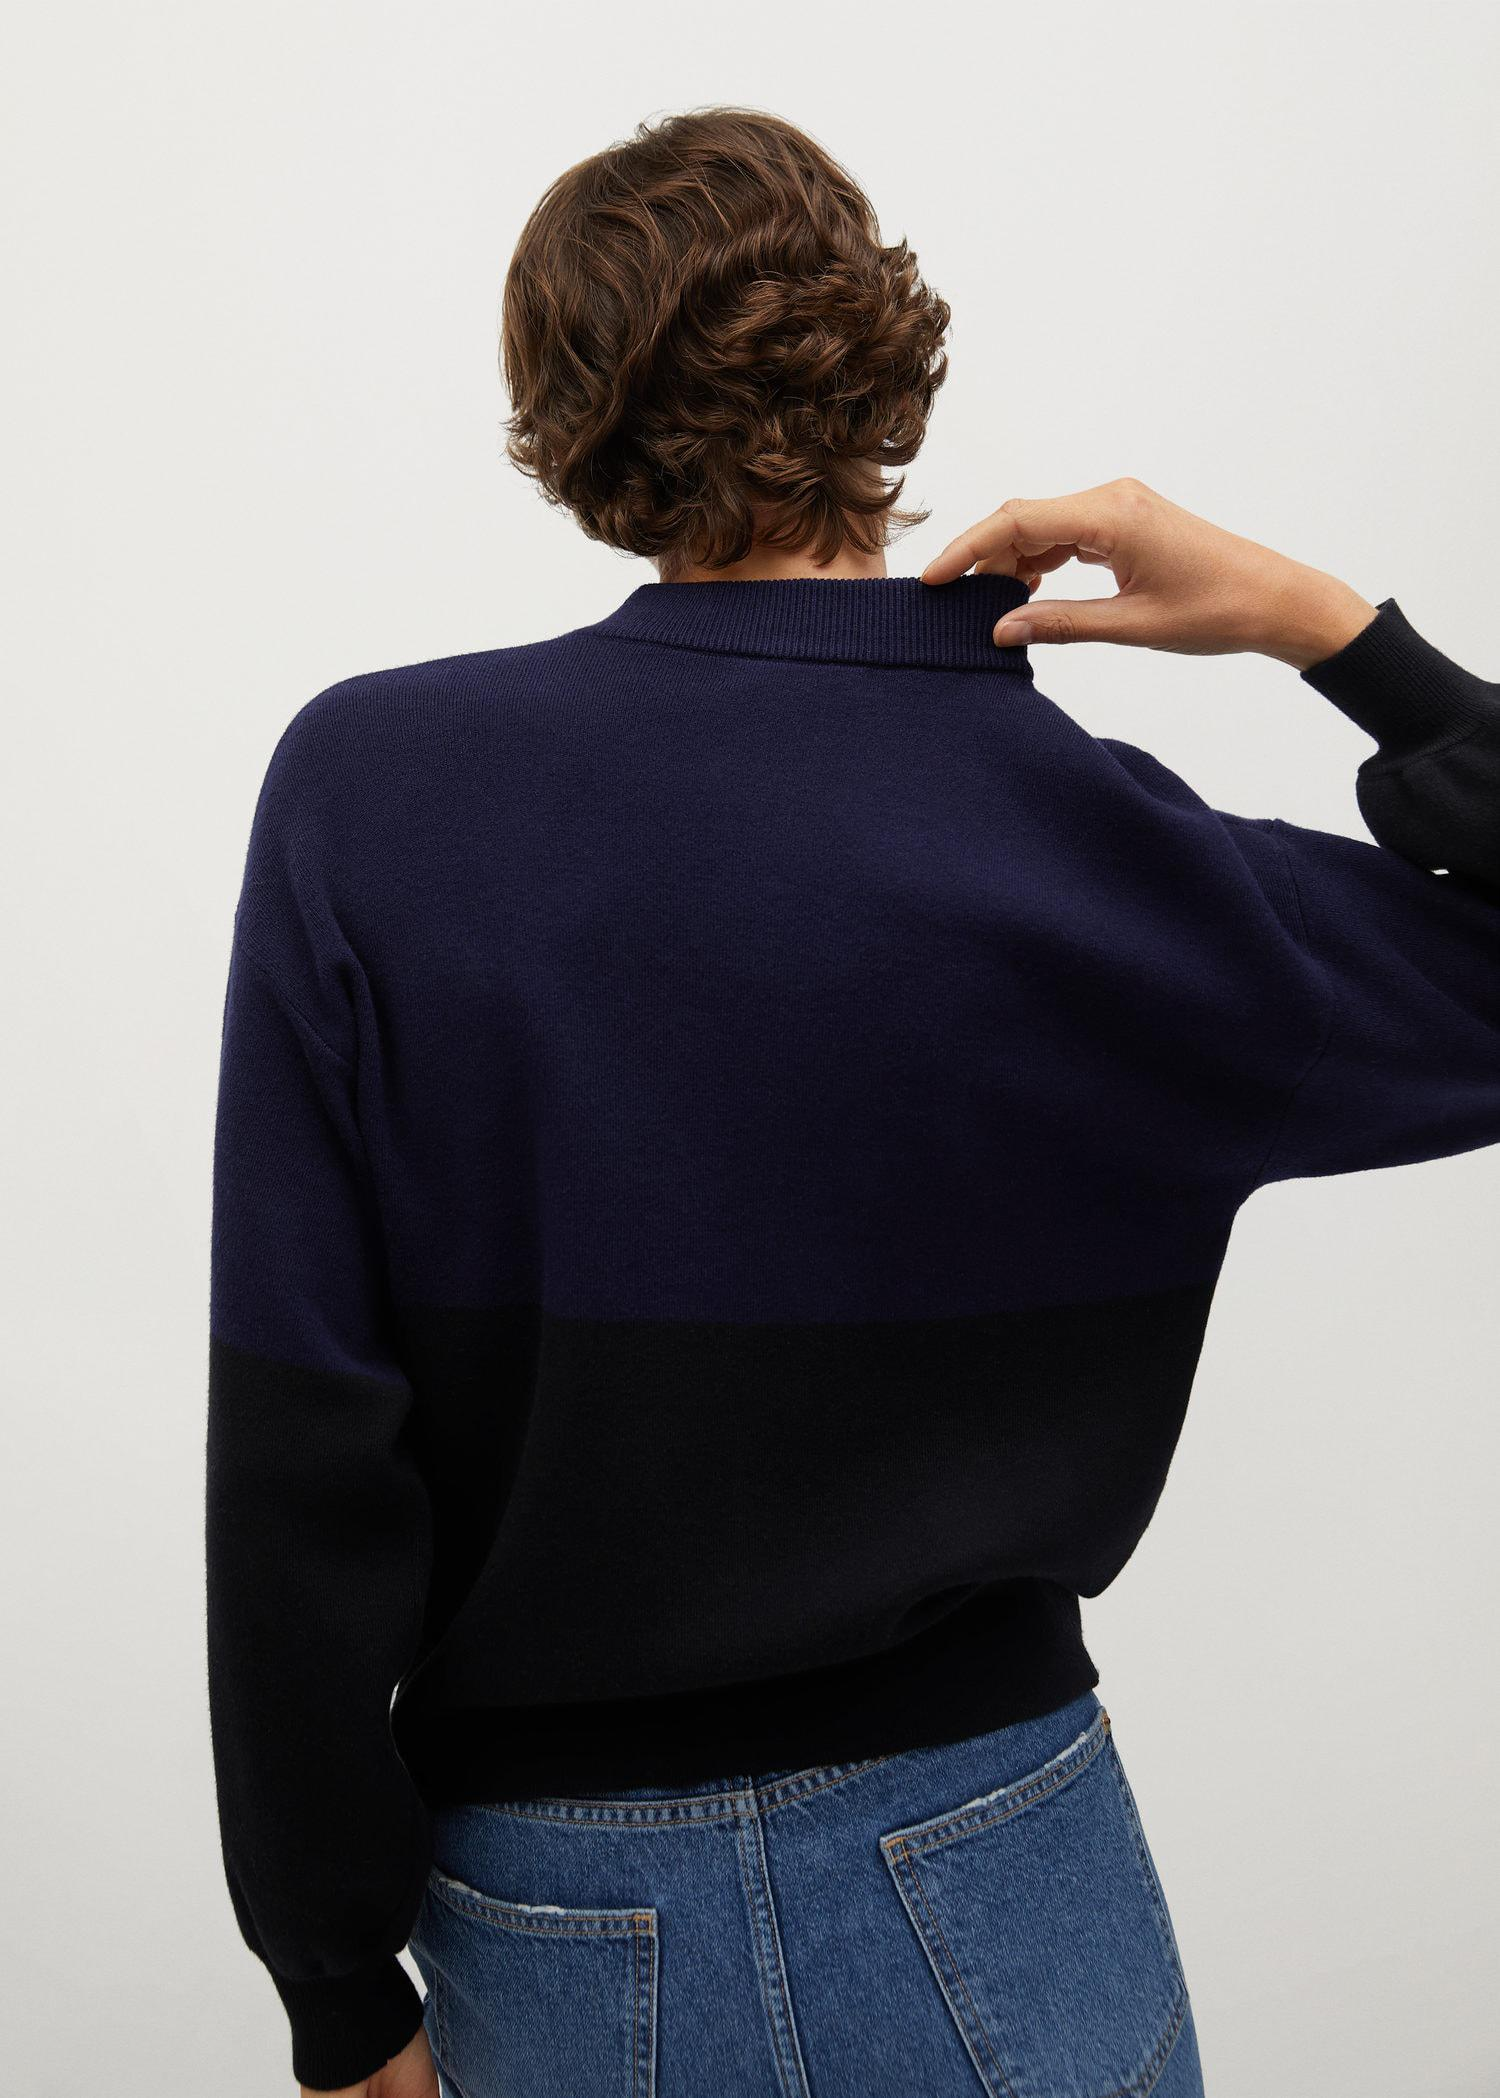 Sweater with puffed sleeves 5